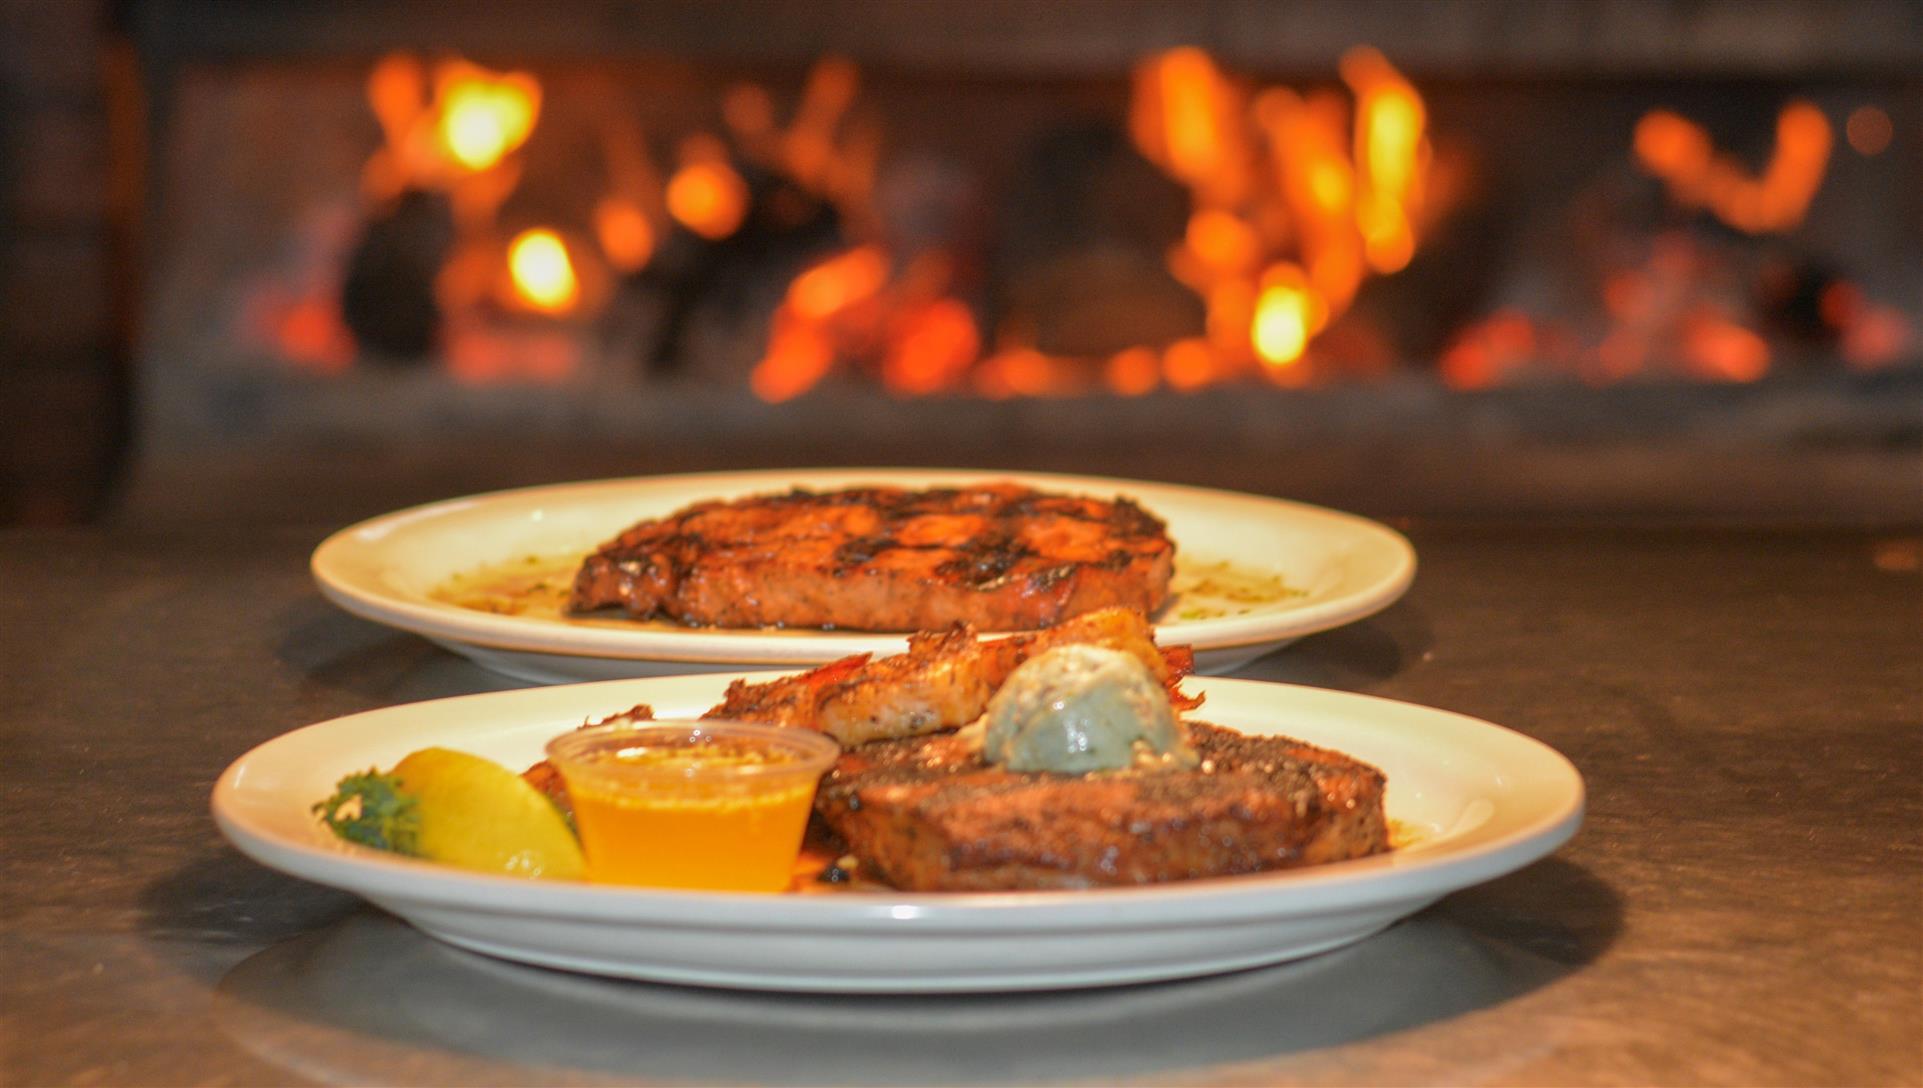 two plates of grilled steaks sitting in front of the open flame grill. the steak in front is topped with grilled shrimp